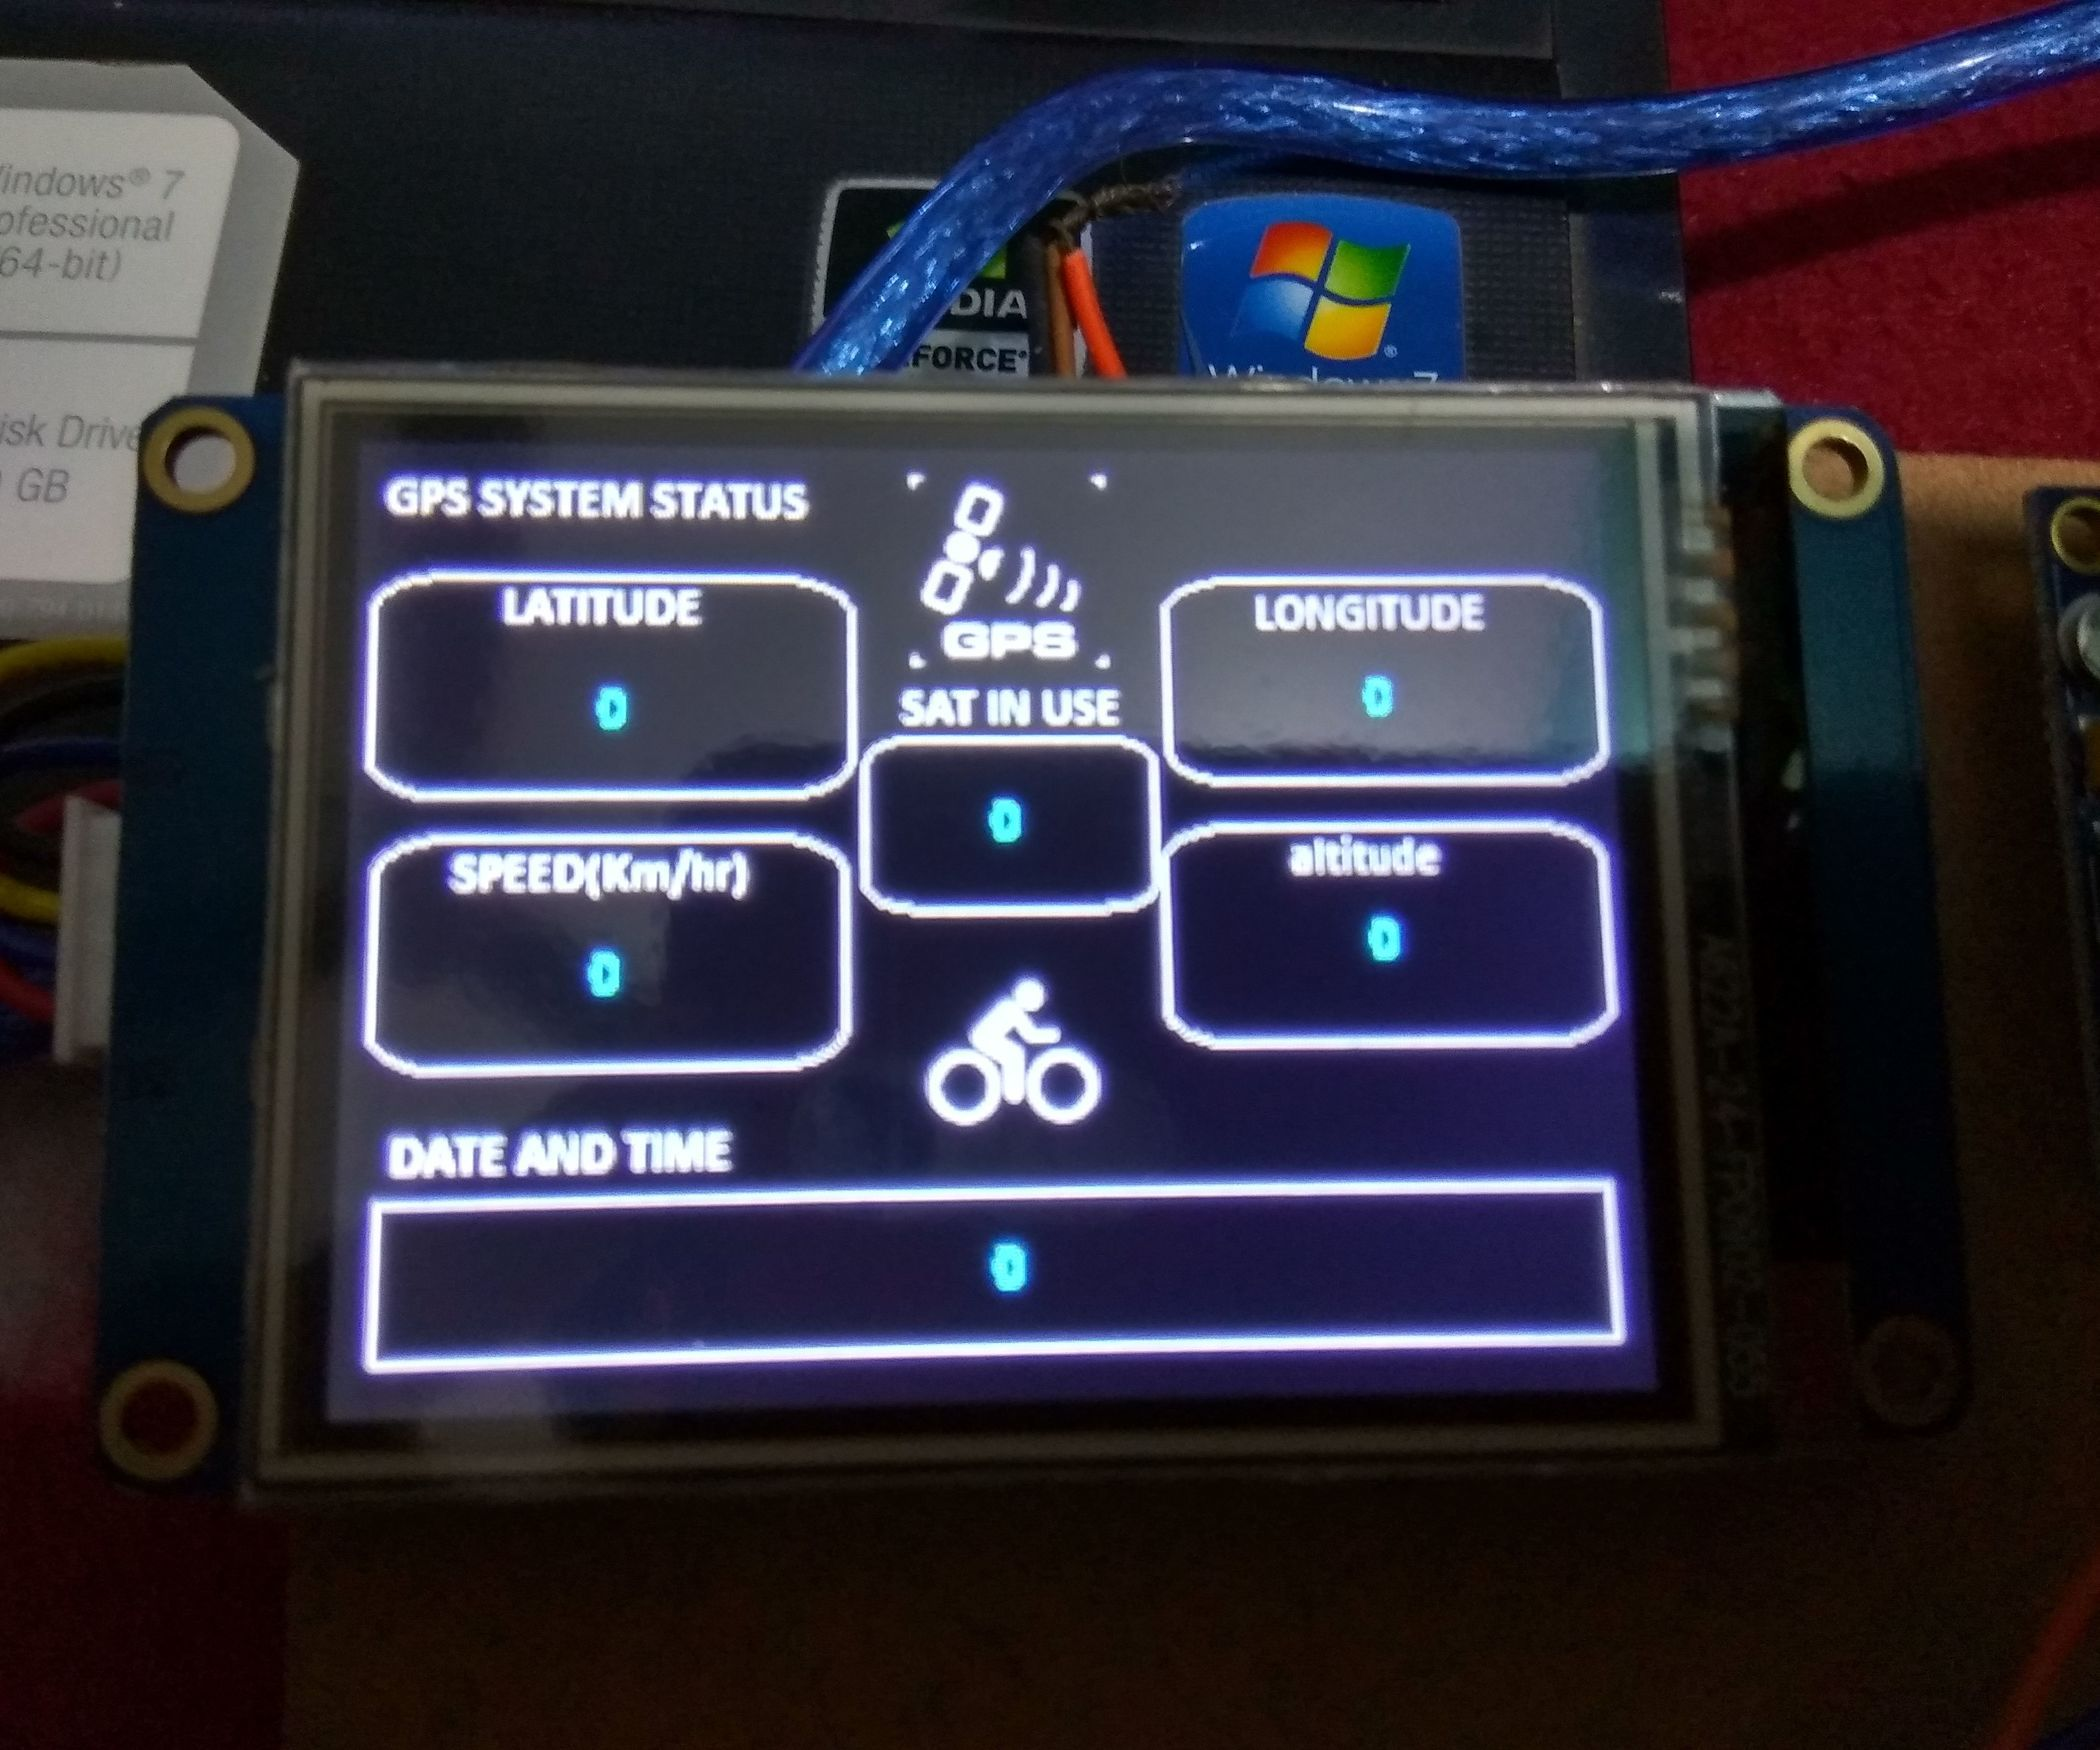 VISUINO : NEXTION GPS DISPLAY AND SDCARD LOGGER | Arduino Projects